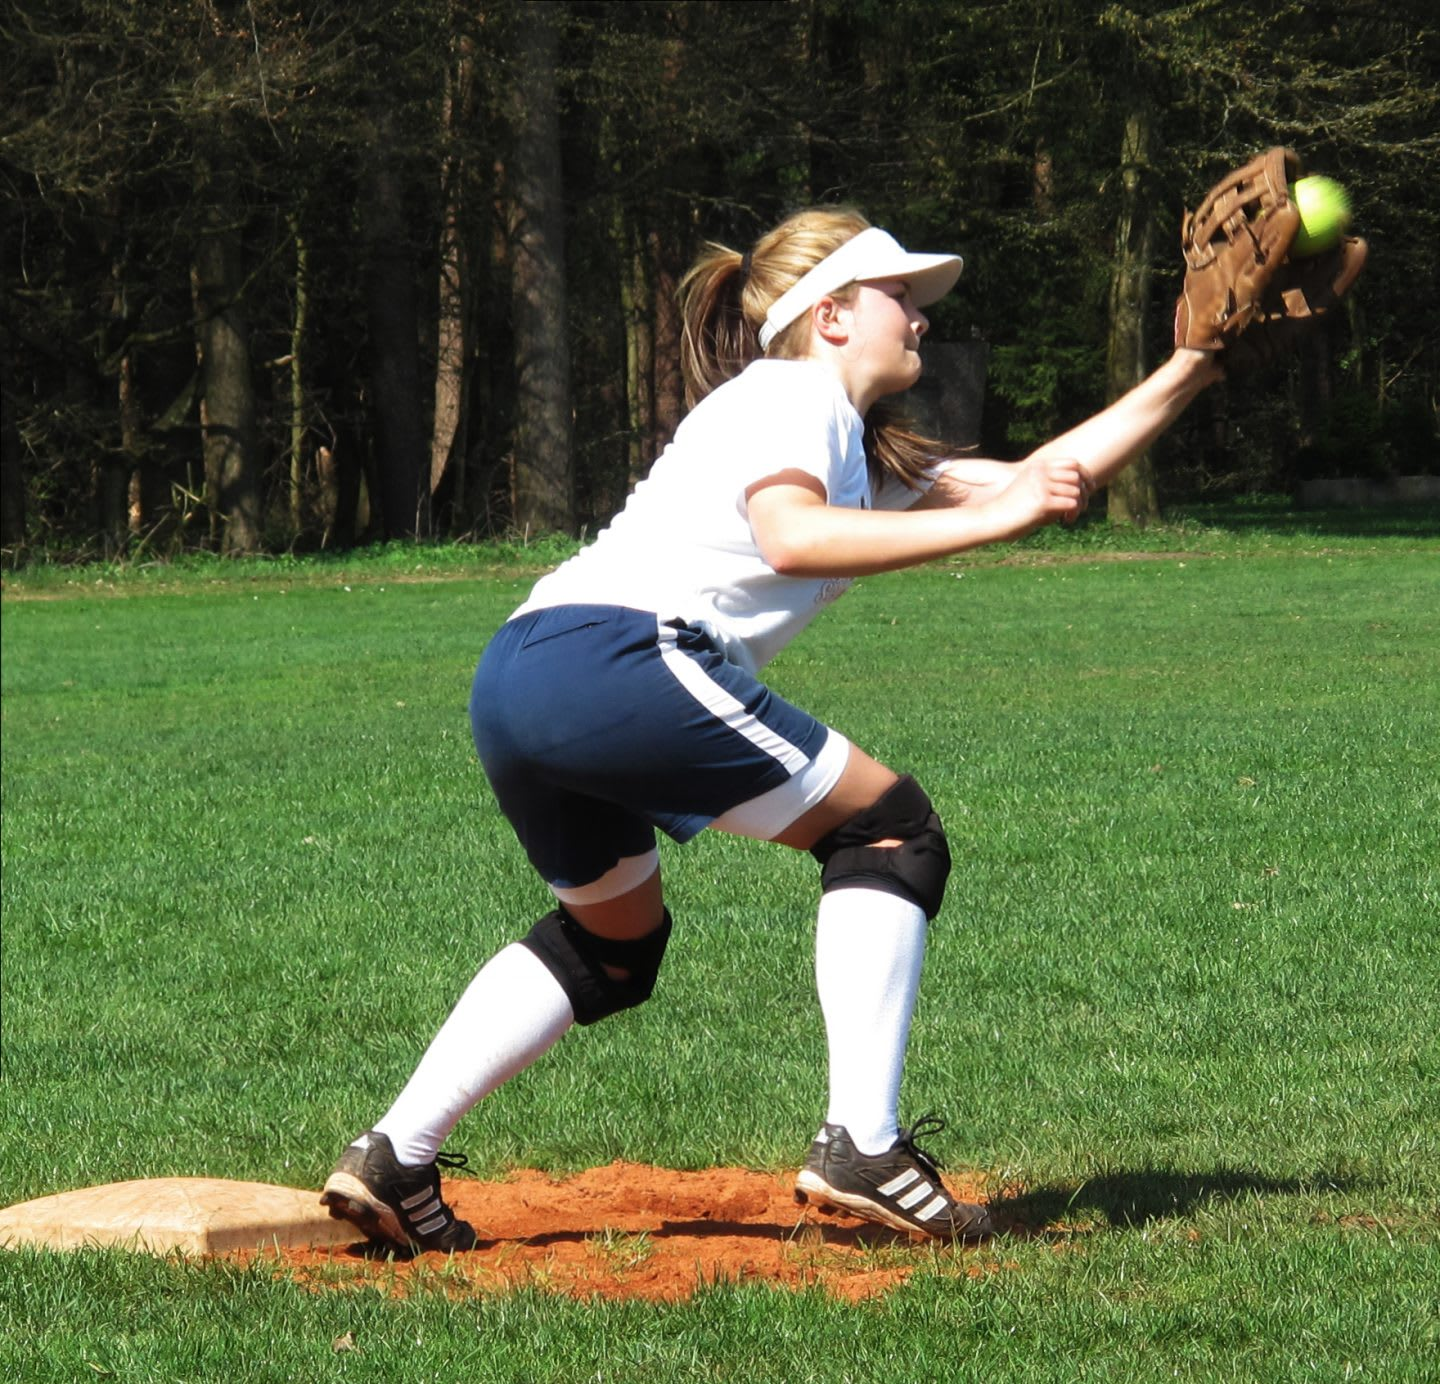 falling-in-love-with-sport-adidas-Gameplan A-Hannah Hlavacek-Softball